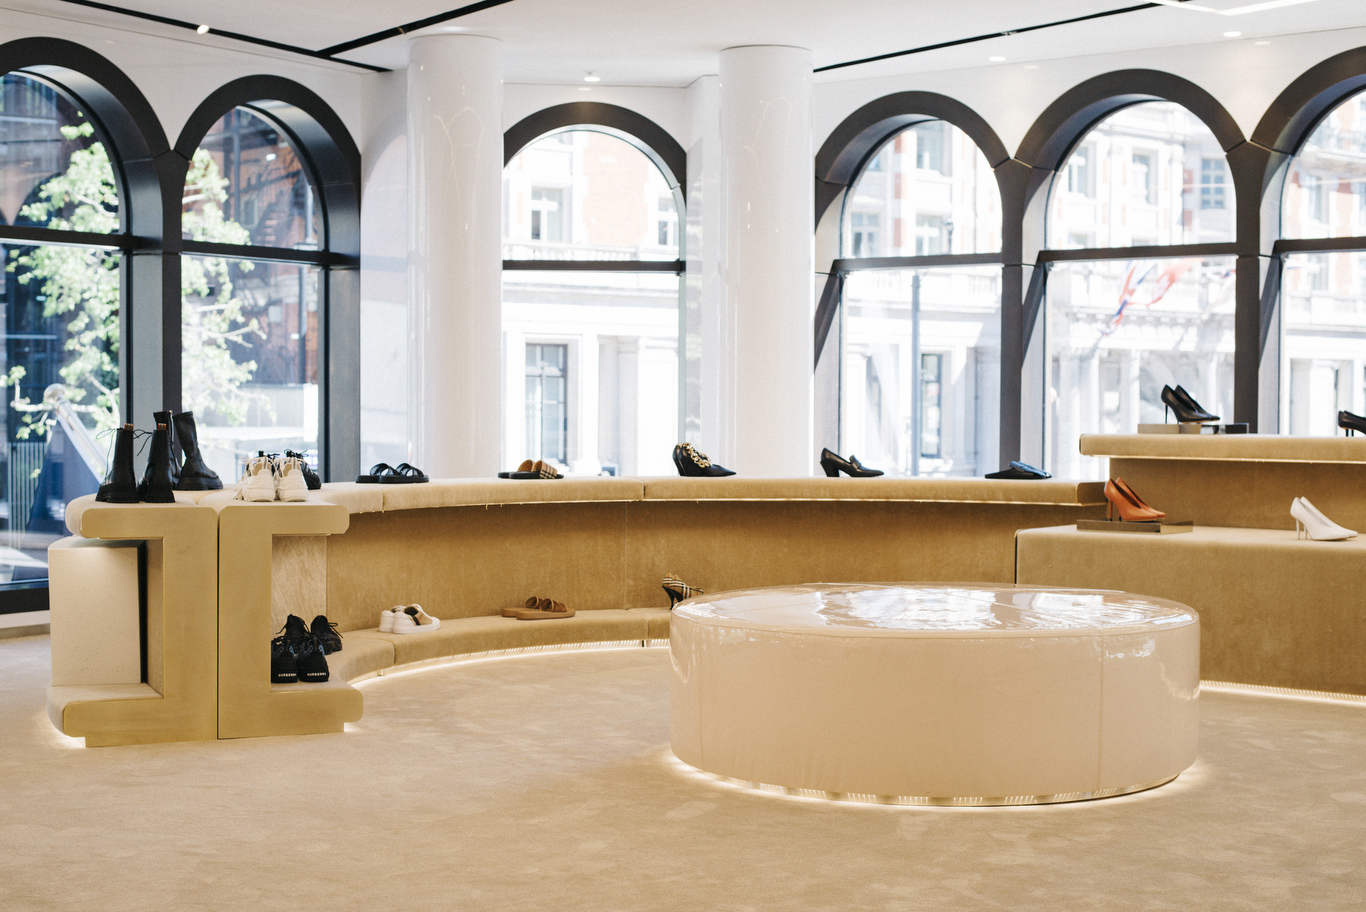 A look at the Burberry concept store opening in Knightsbridge